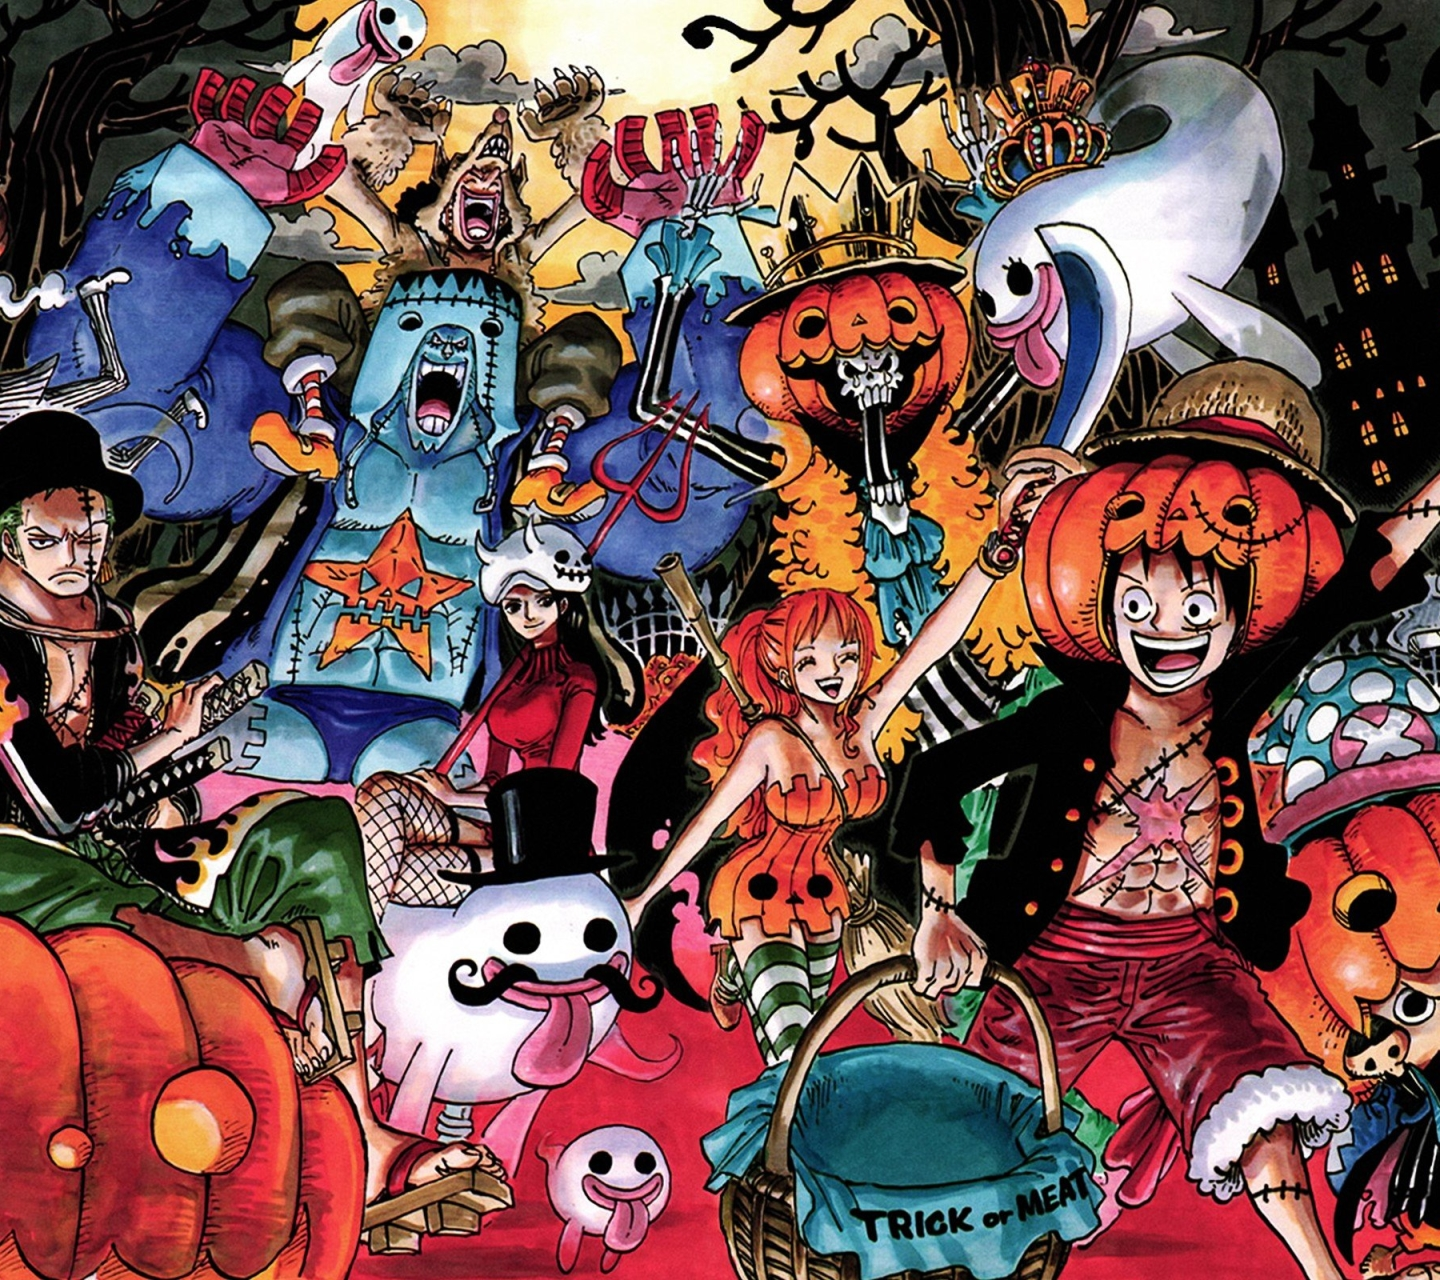 Anime One Piece 1440x1280 Wallpaper Id 656252 Mobile Abyss